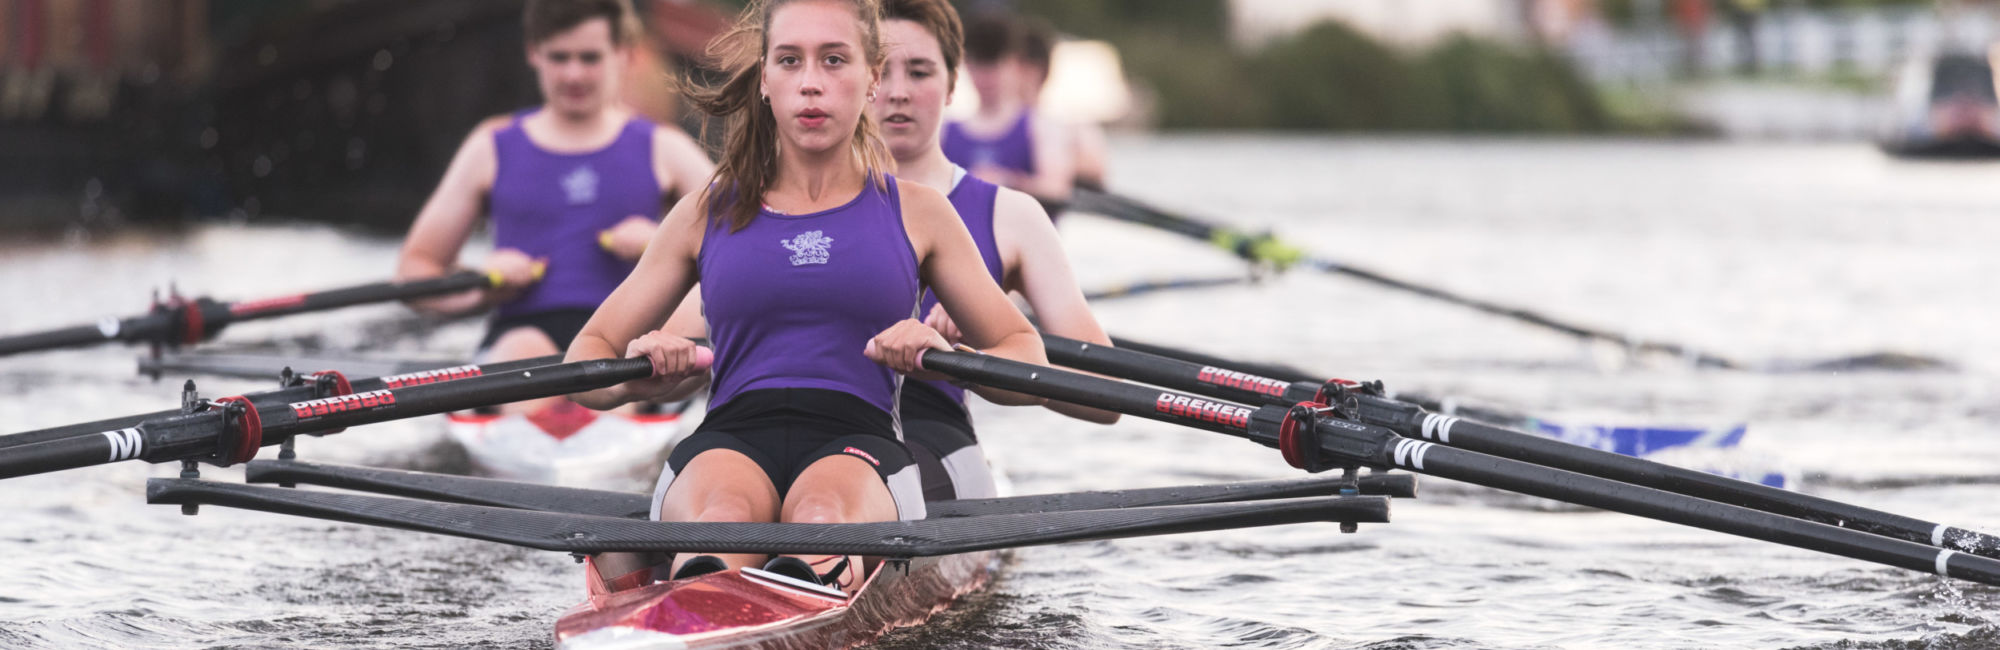 wycliffe college female rowing team